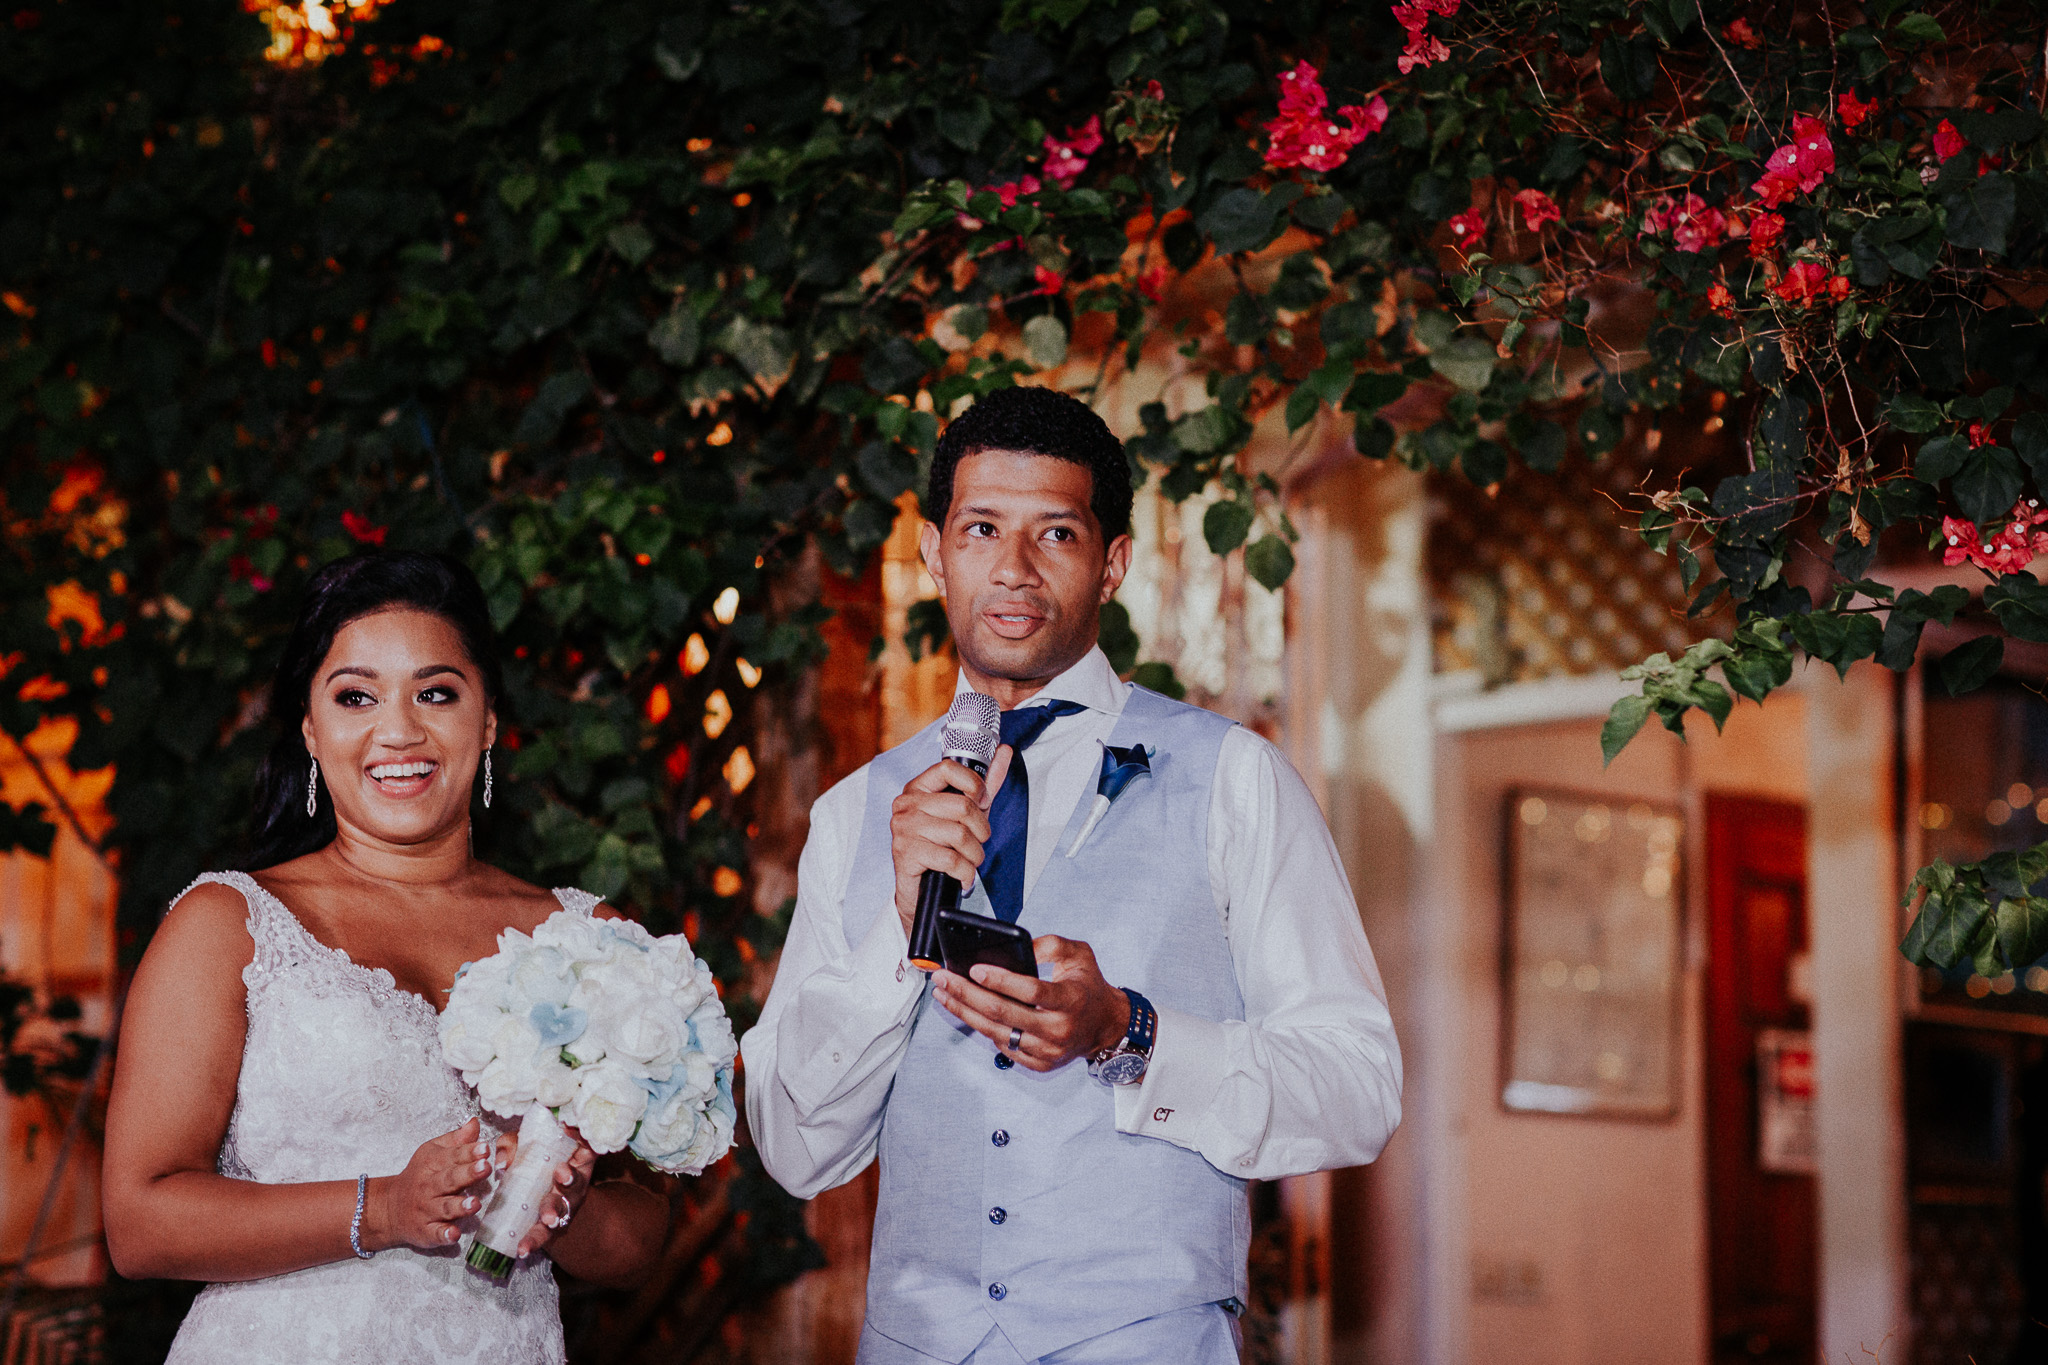 Neisha+Chris wedding in Trinidad and Tobago